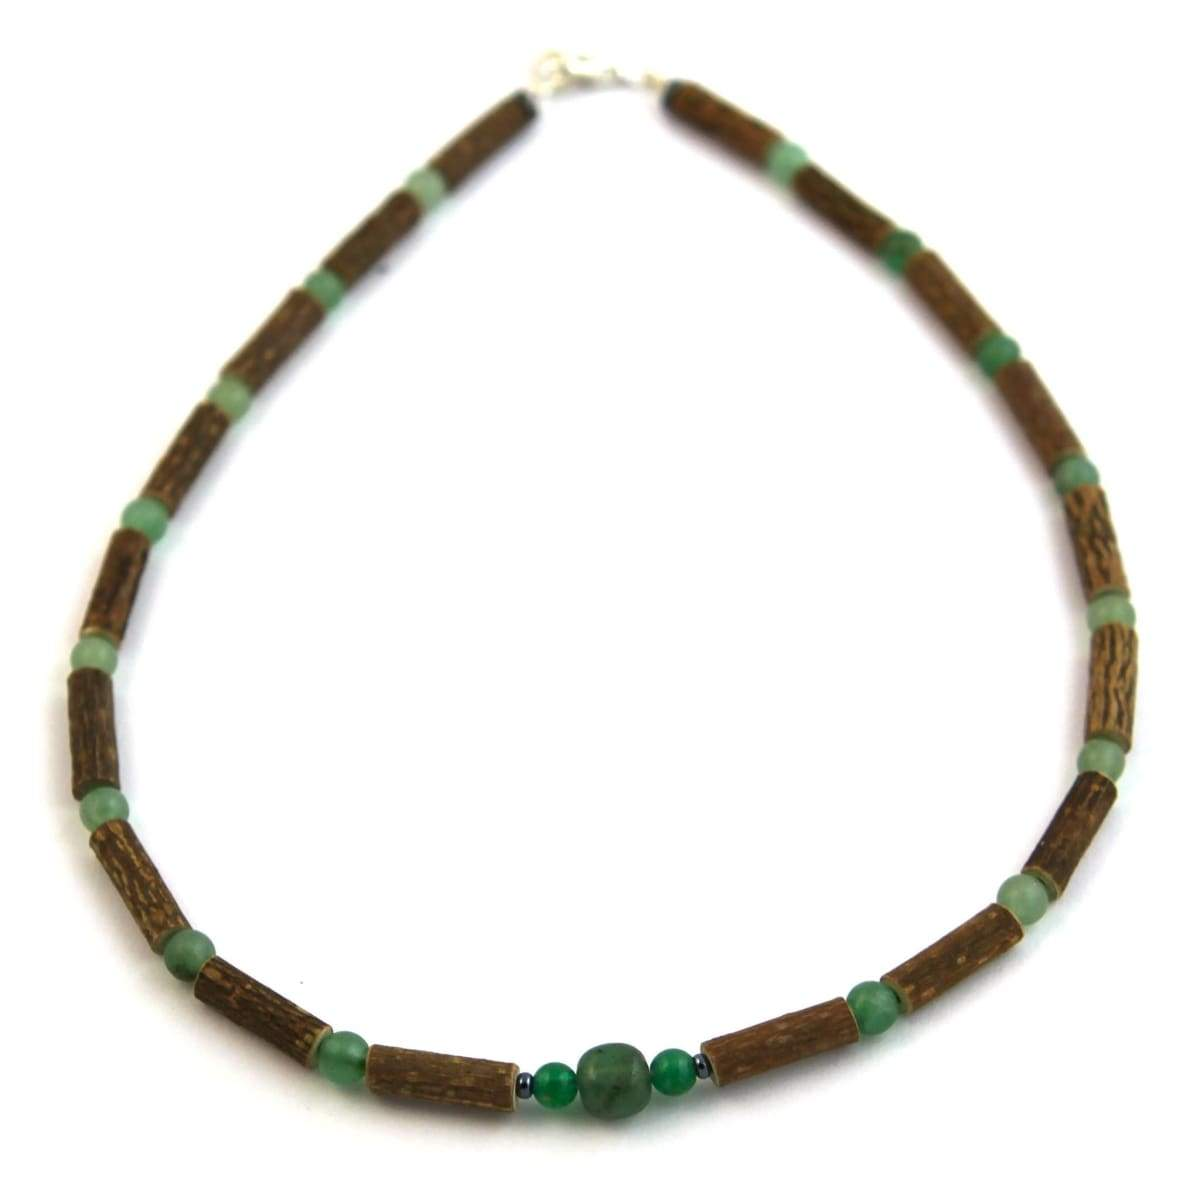 Hazel-Gemstone Green Aventurine - 11 Necklace - Lobster Claw Clasp - Hazelwood & Gemstone Jewelry